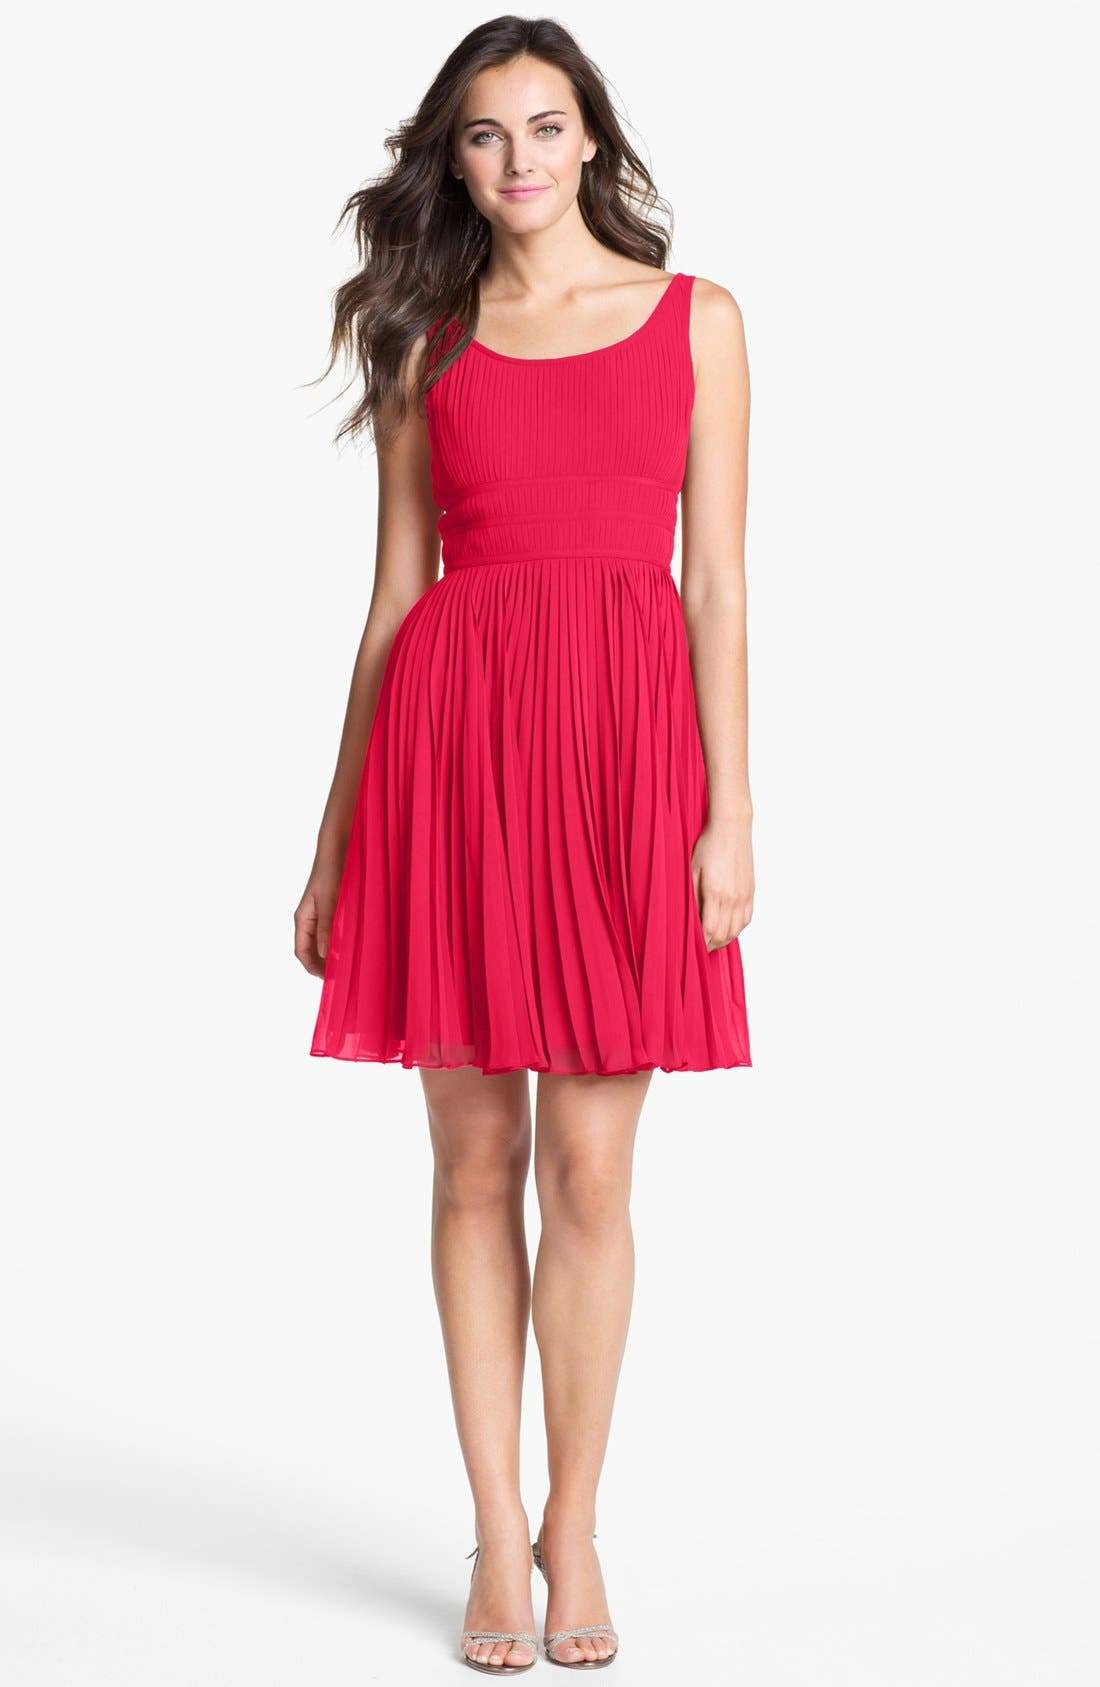 Alternate Image 1 Selected - Adrianna Papell Pleated Chiffon Fit & Flare Dress